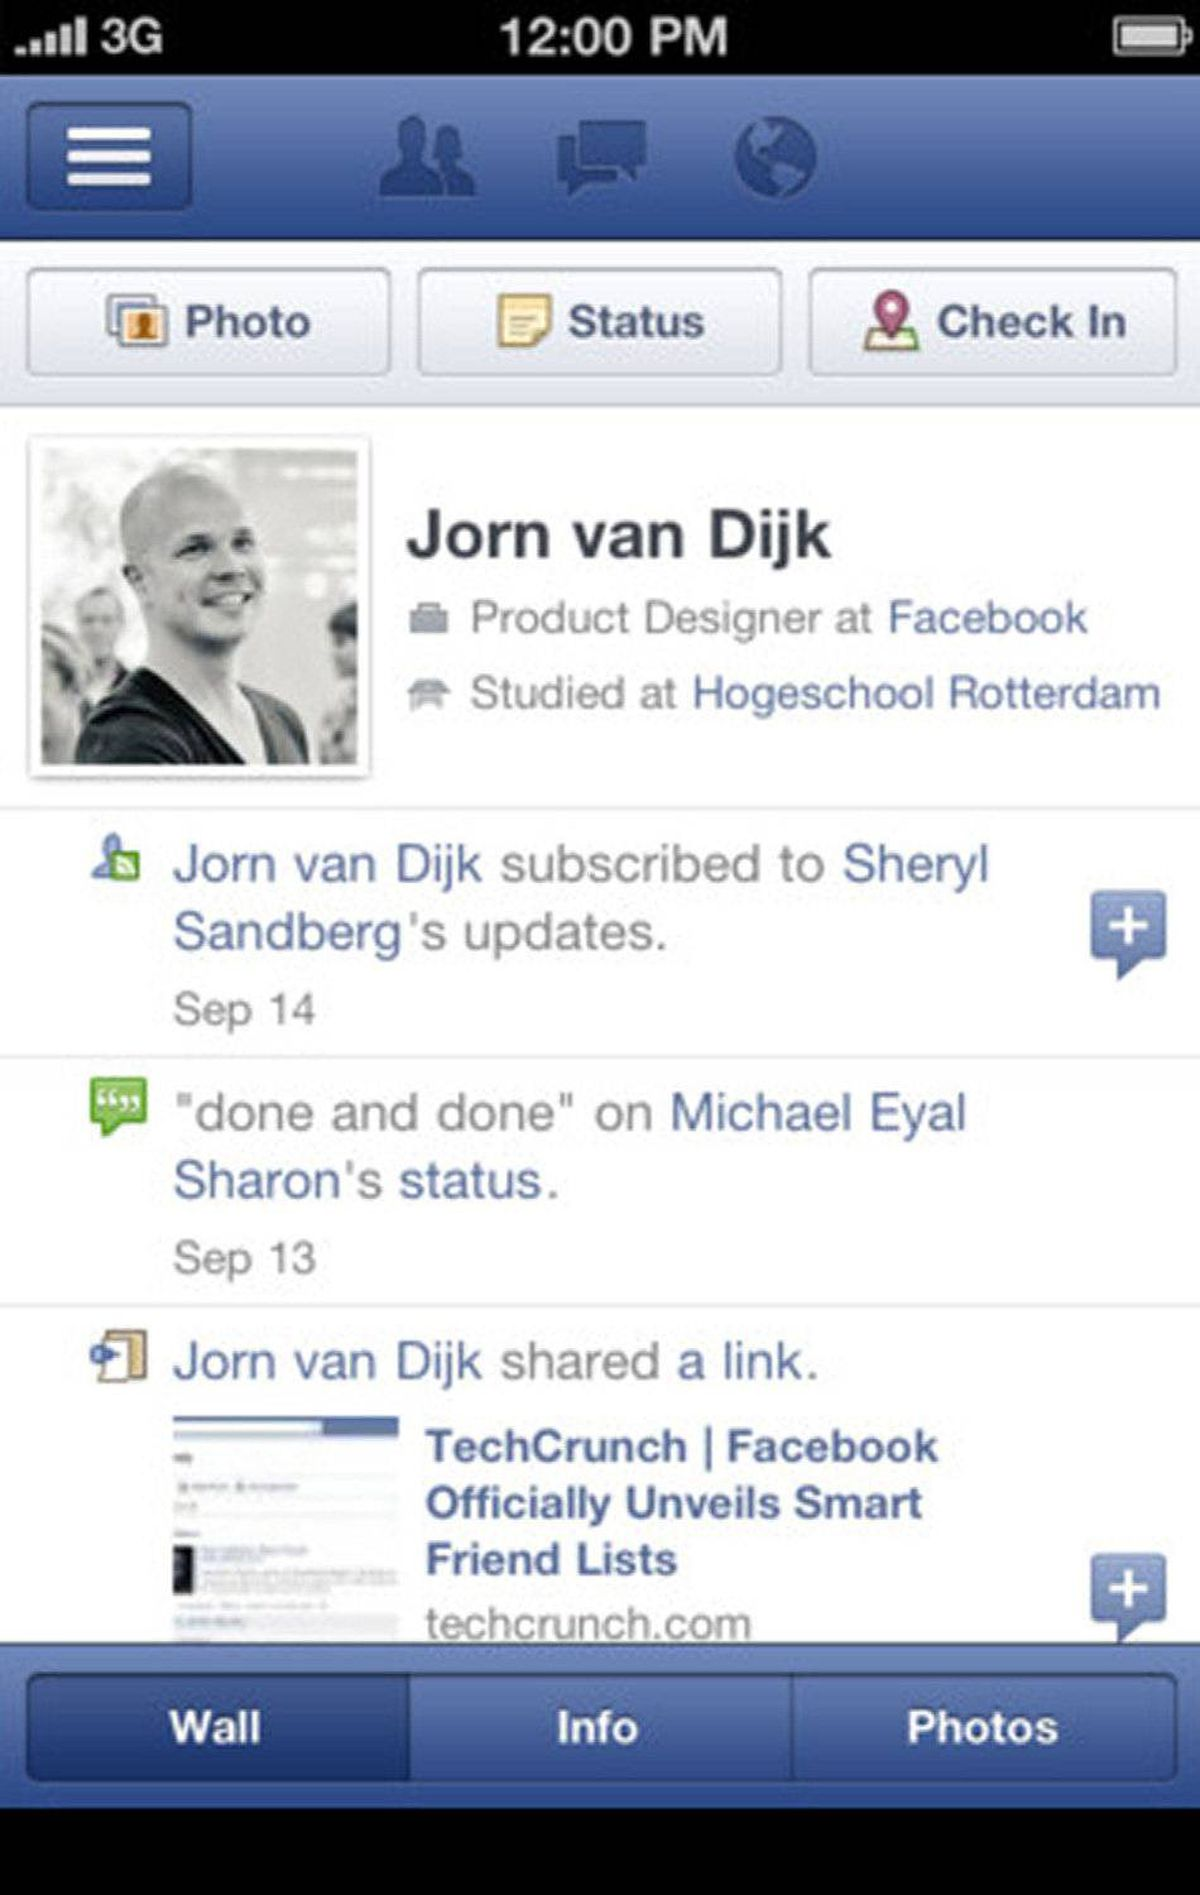 Facebook You could use the mobile Safari web browser to access Facebook from the iPhone, or you could use the official free app. Facebook for iPhone makes it easy to post updates and send messages, chat with friends, and keep up with their photo and status updates. Push notifications keep you informed when you're doing something else. Your groups, pages, and games are all here. Search for anything on Facebook – people, pages, and more – without having to click around or switch views, and without having to open the browser.